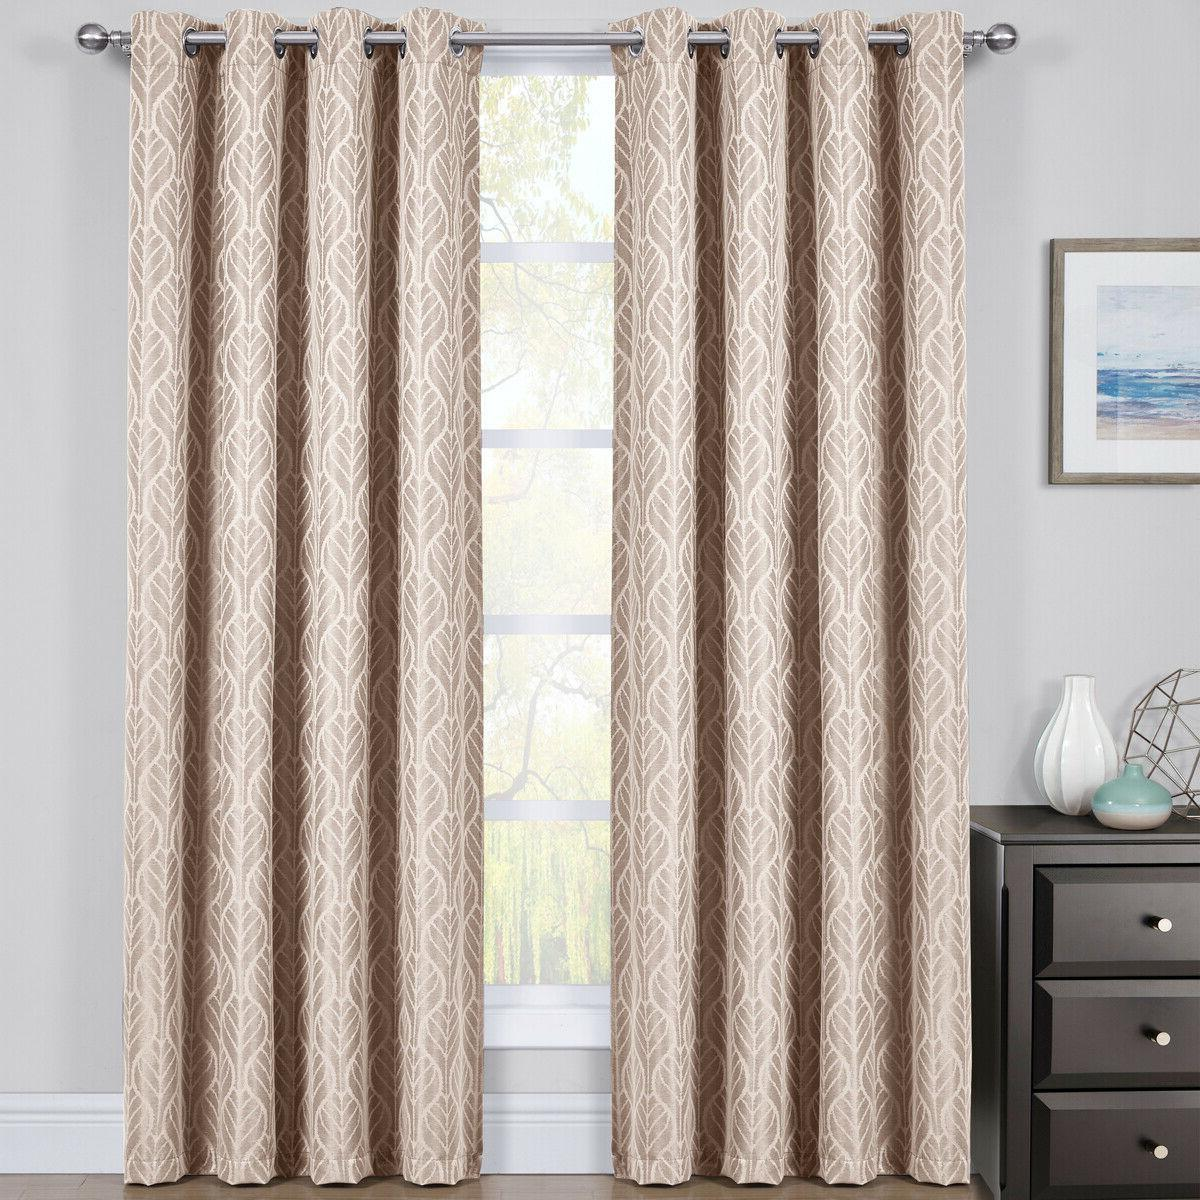 2 Panels Taupe Thermal Blackout Curtains